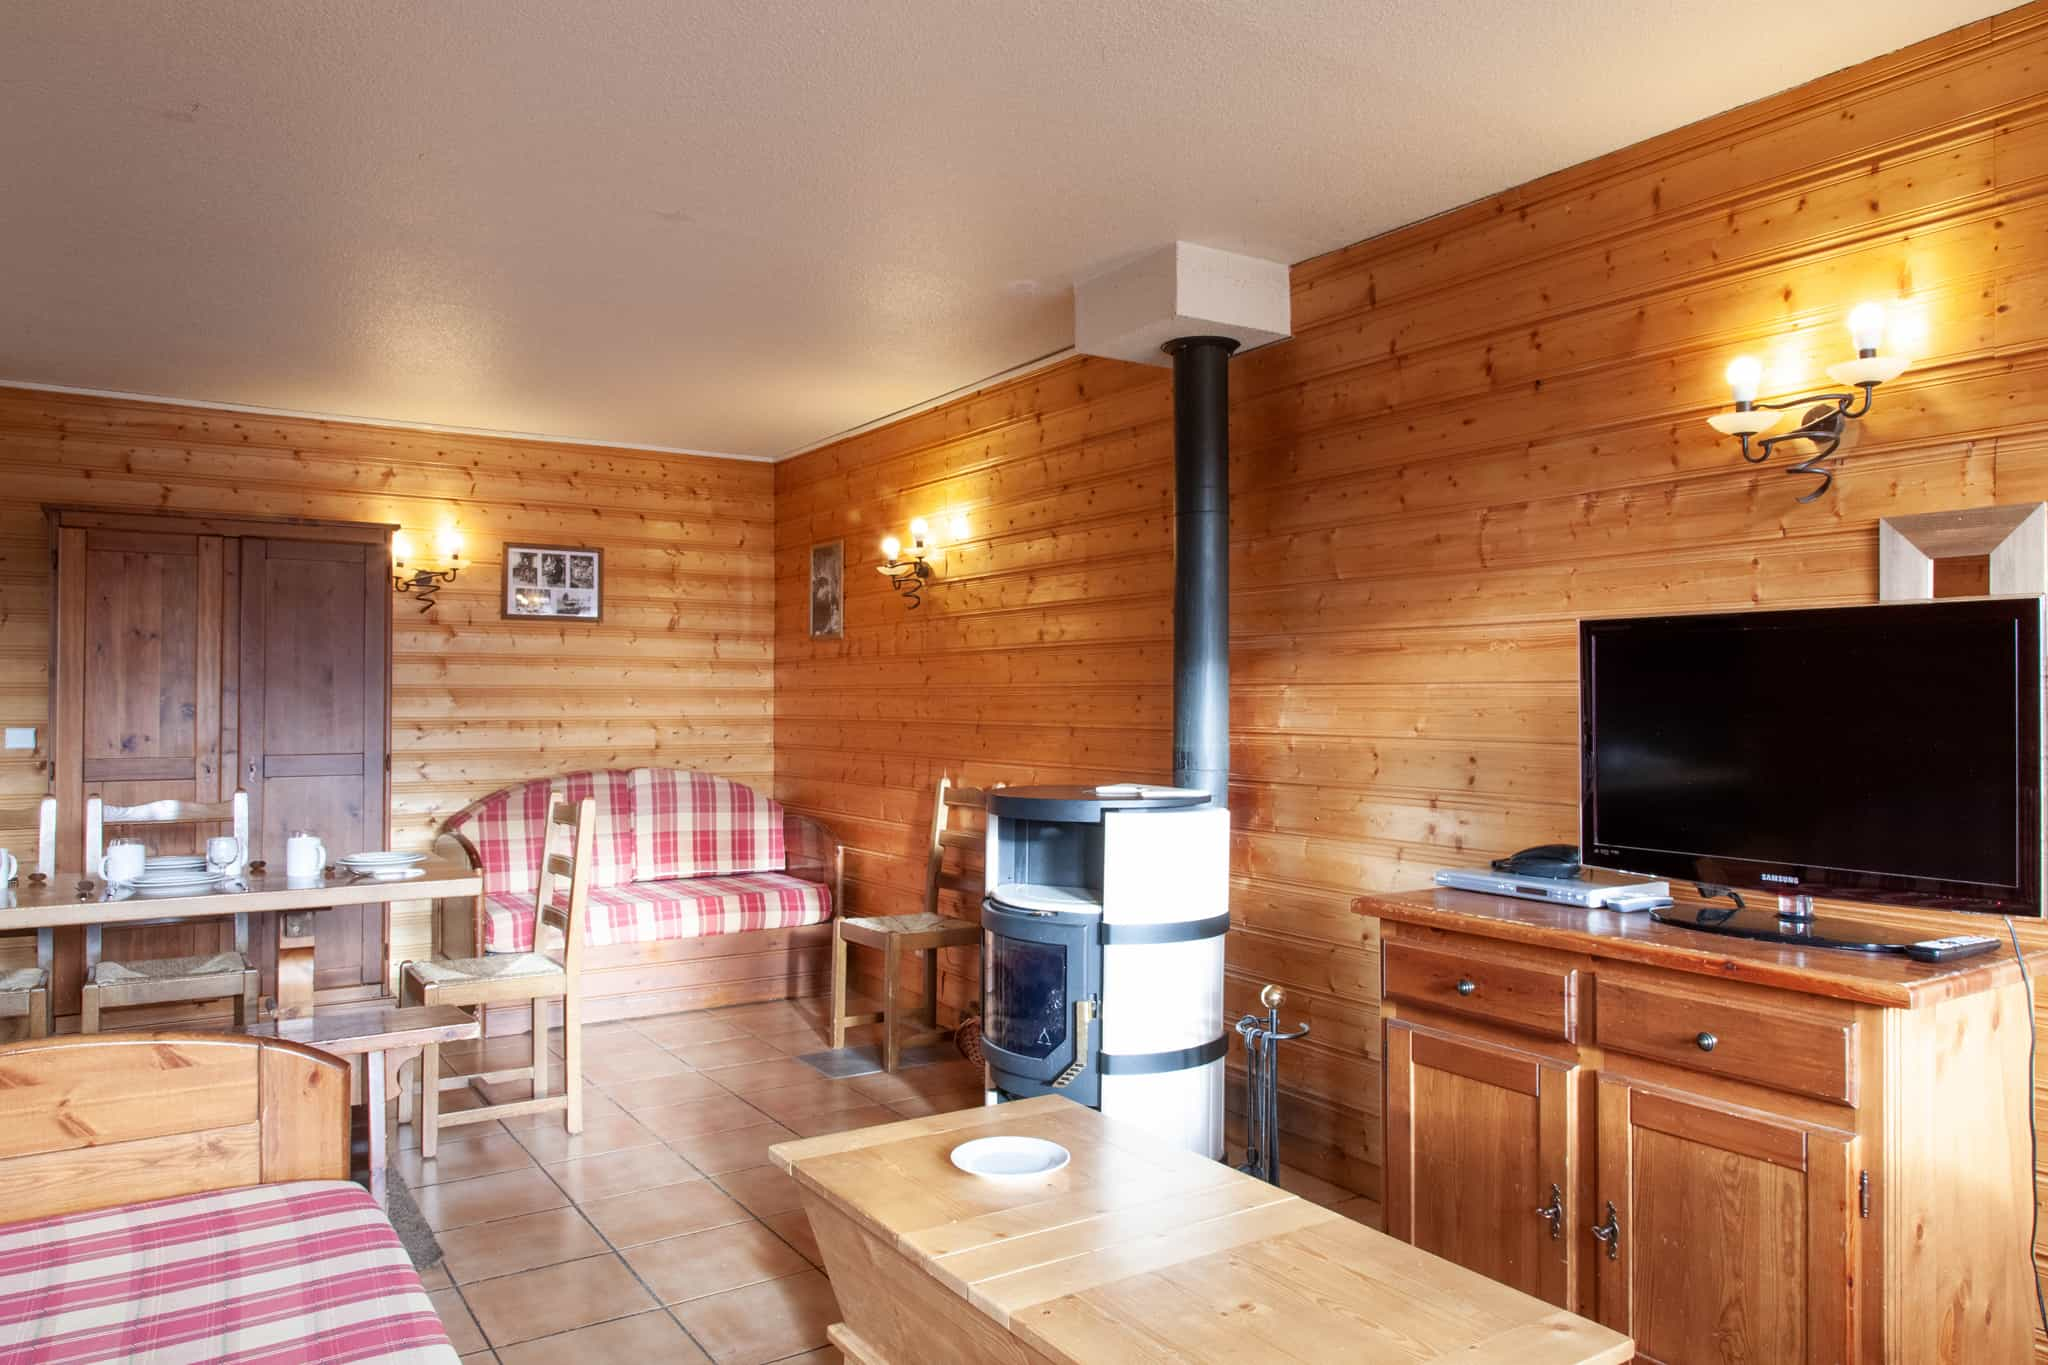 1-VALCHAVIERE-Types-Appartement-10-12pers-sejour